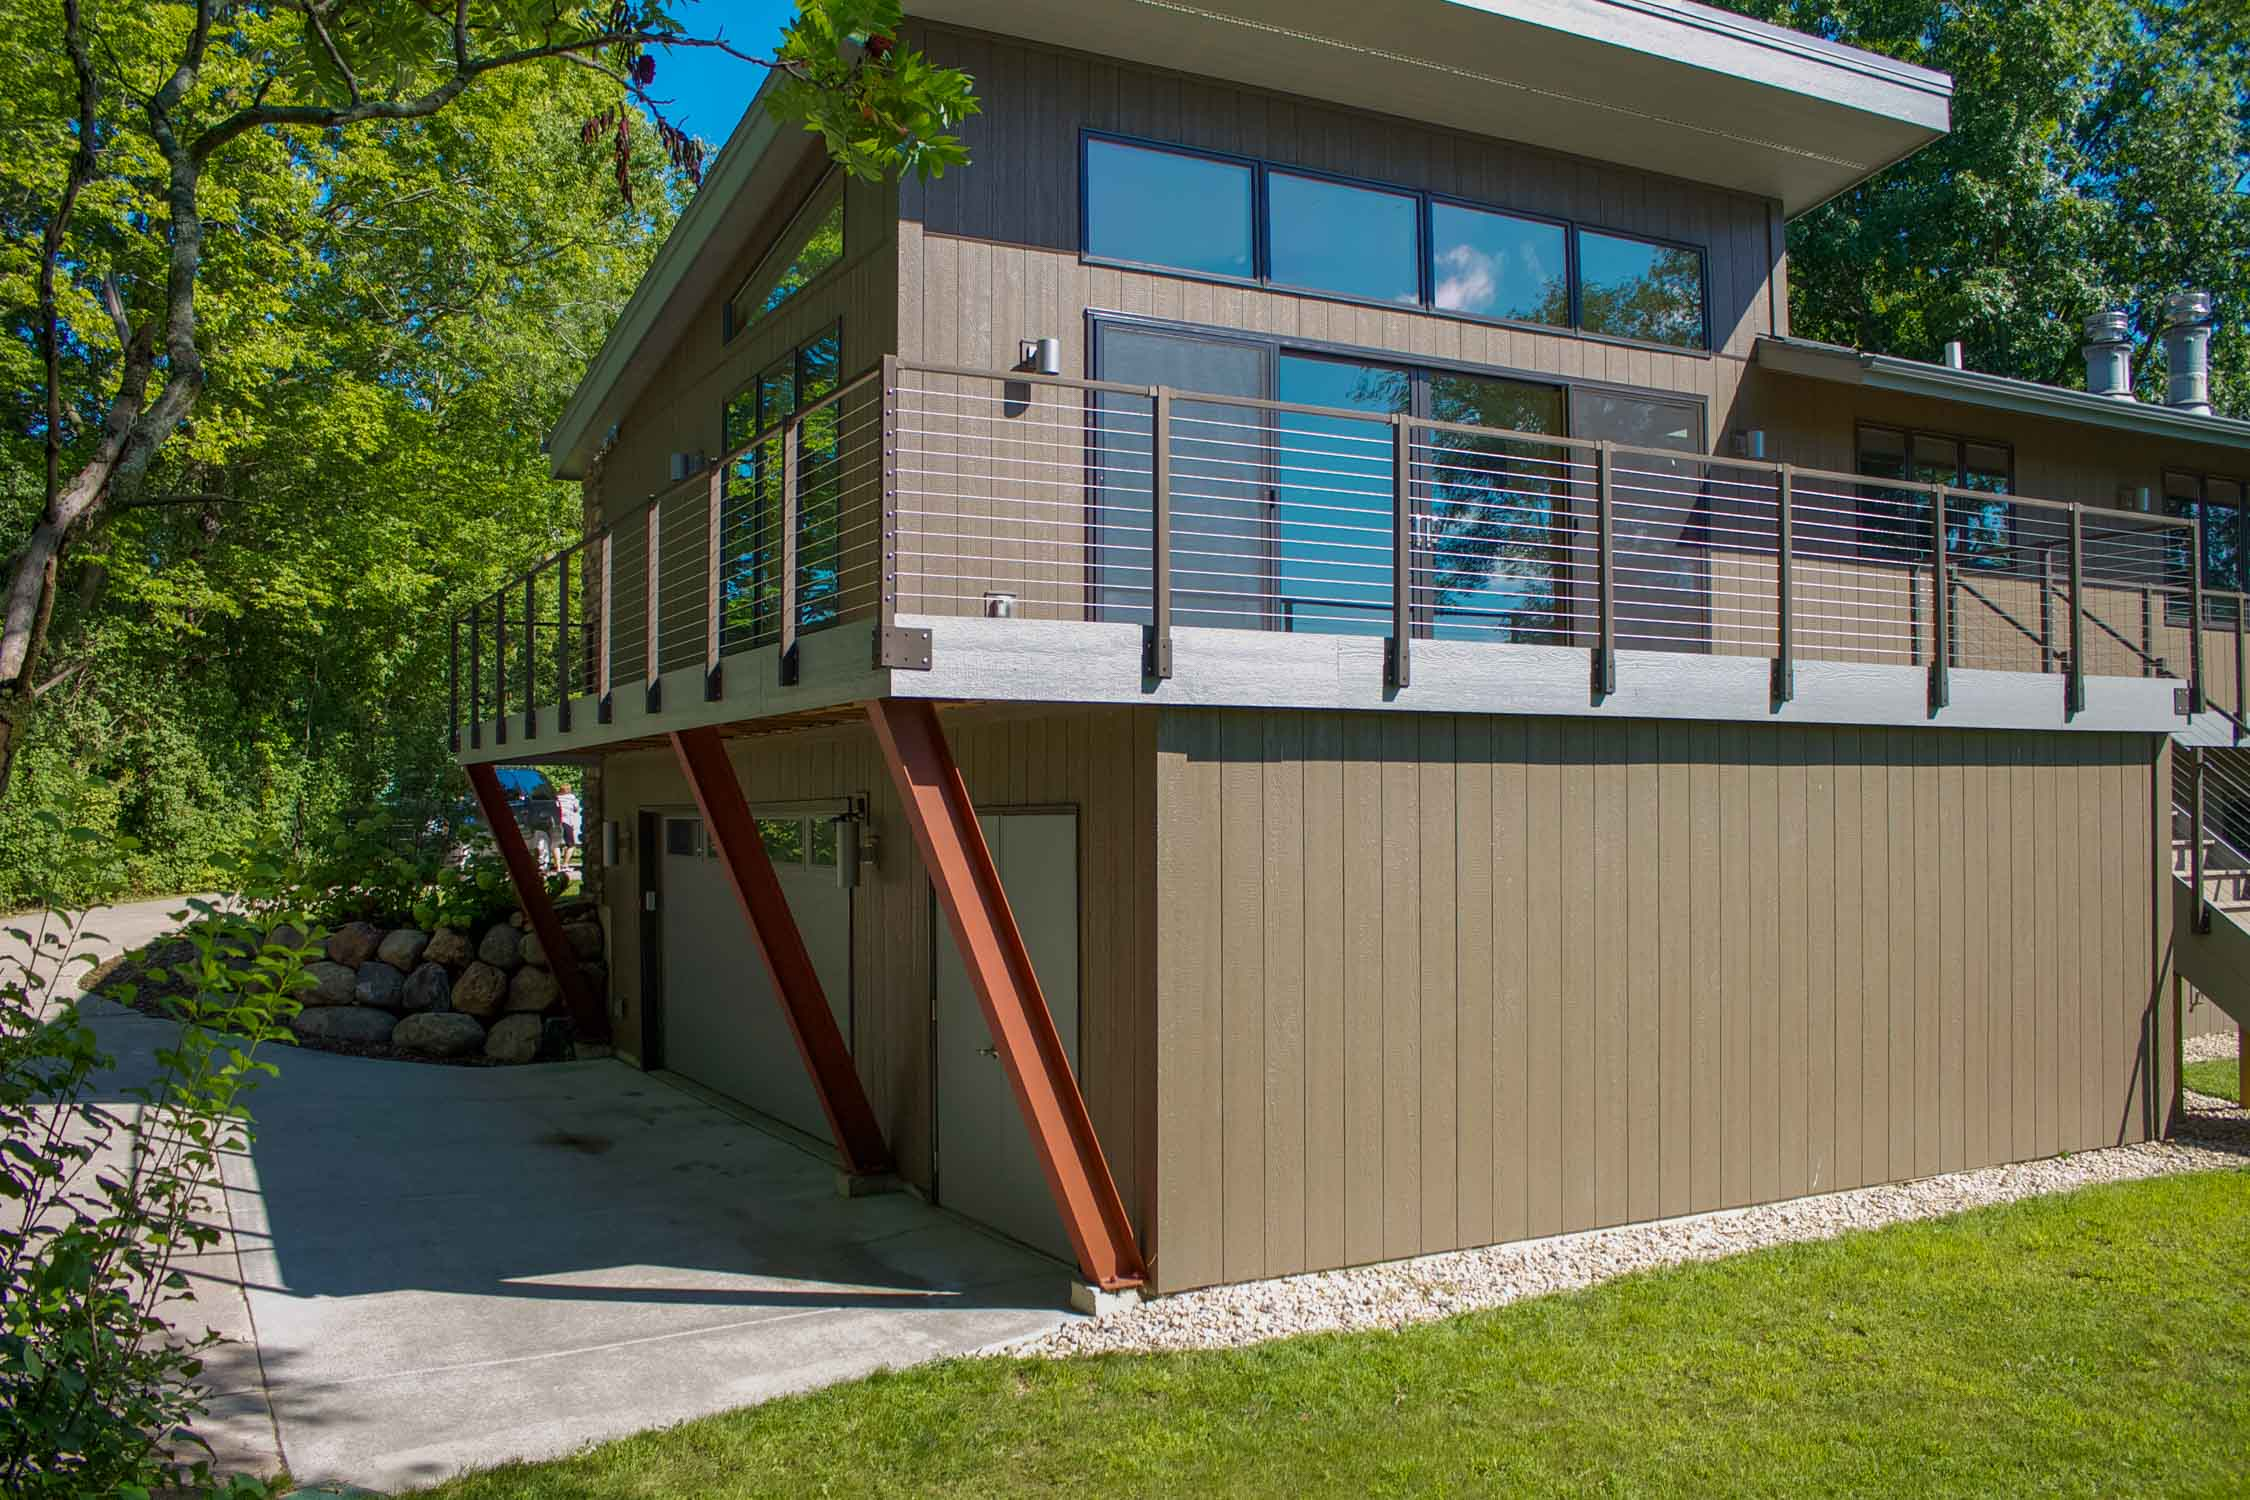 - A sunroom was placed above the garage at this 1970's transformed home. While converting the garage to living space might not be the right answer in Wisconsin, sometimes additional space above the garage is the solution.